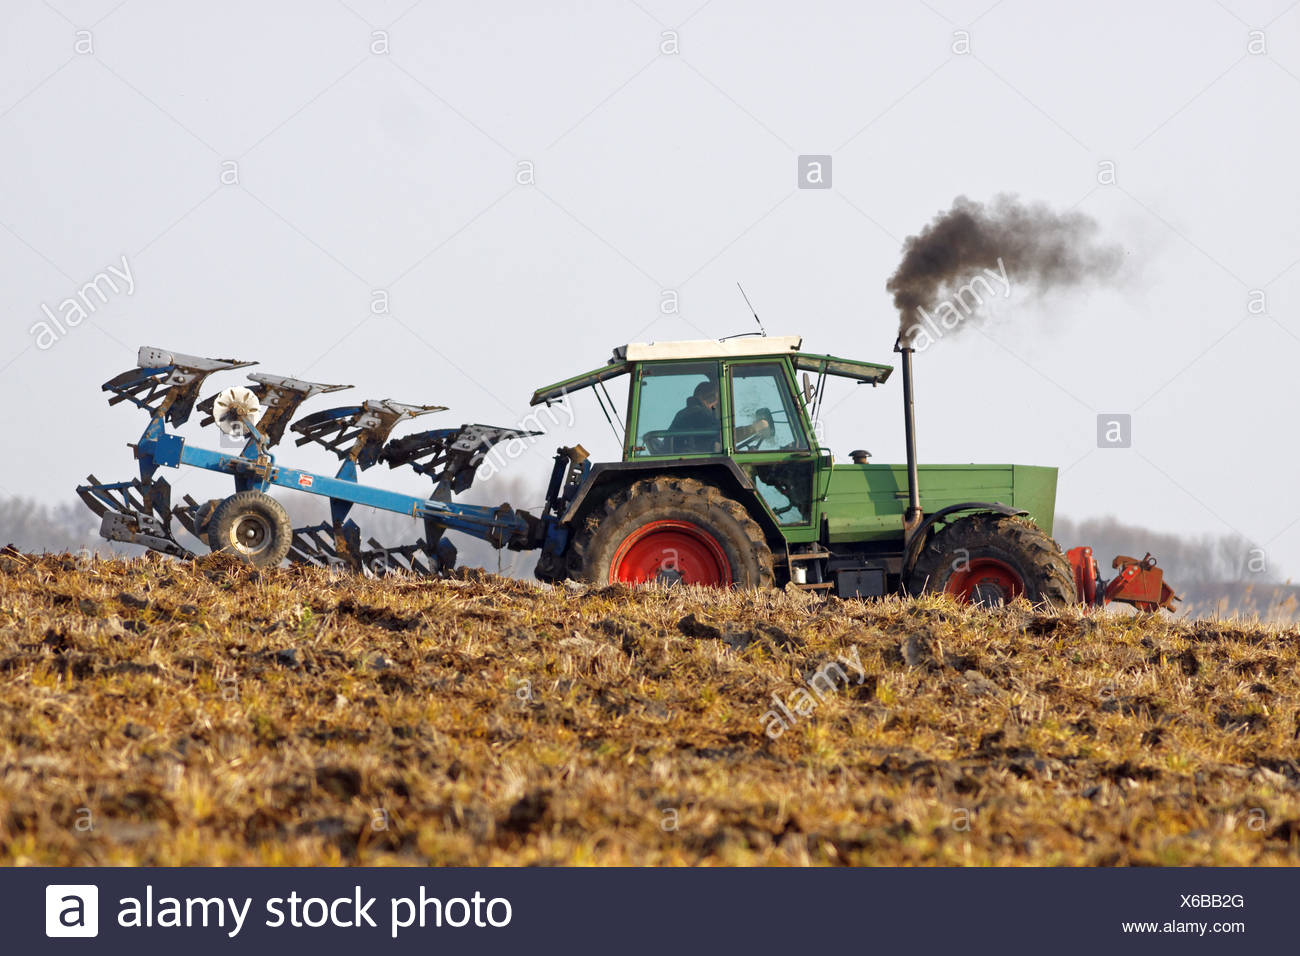 Tractor while plowing - Stock Image